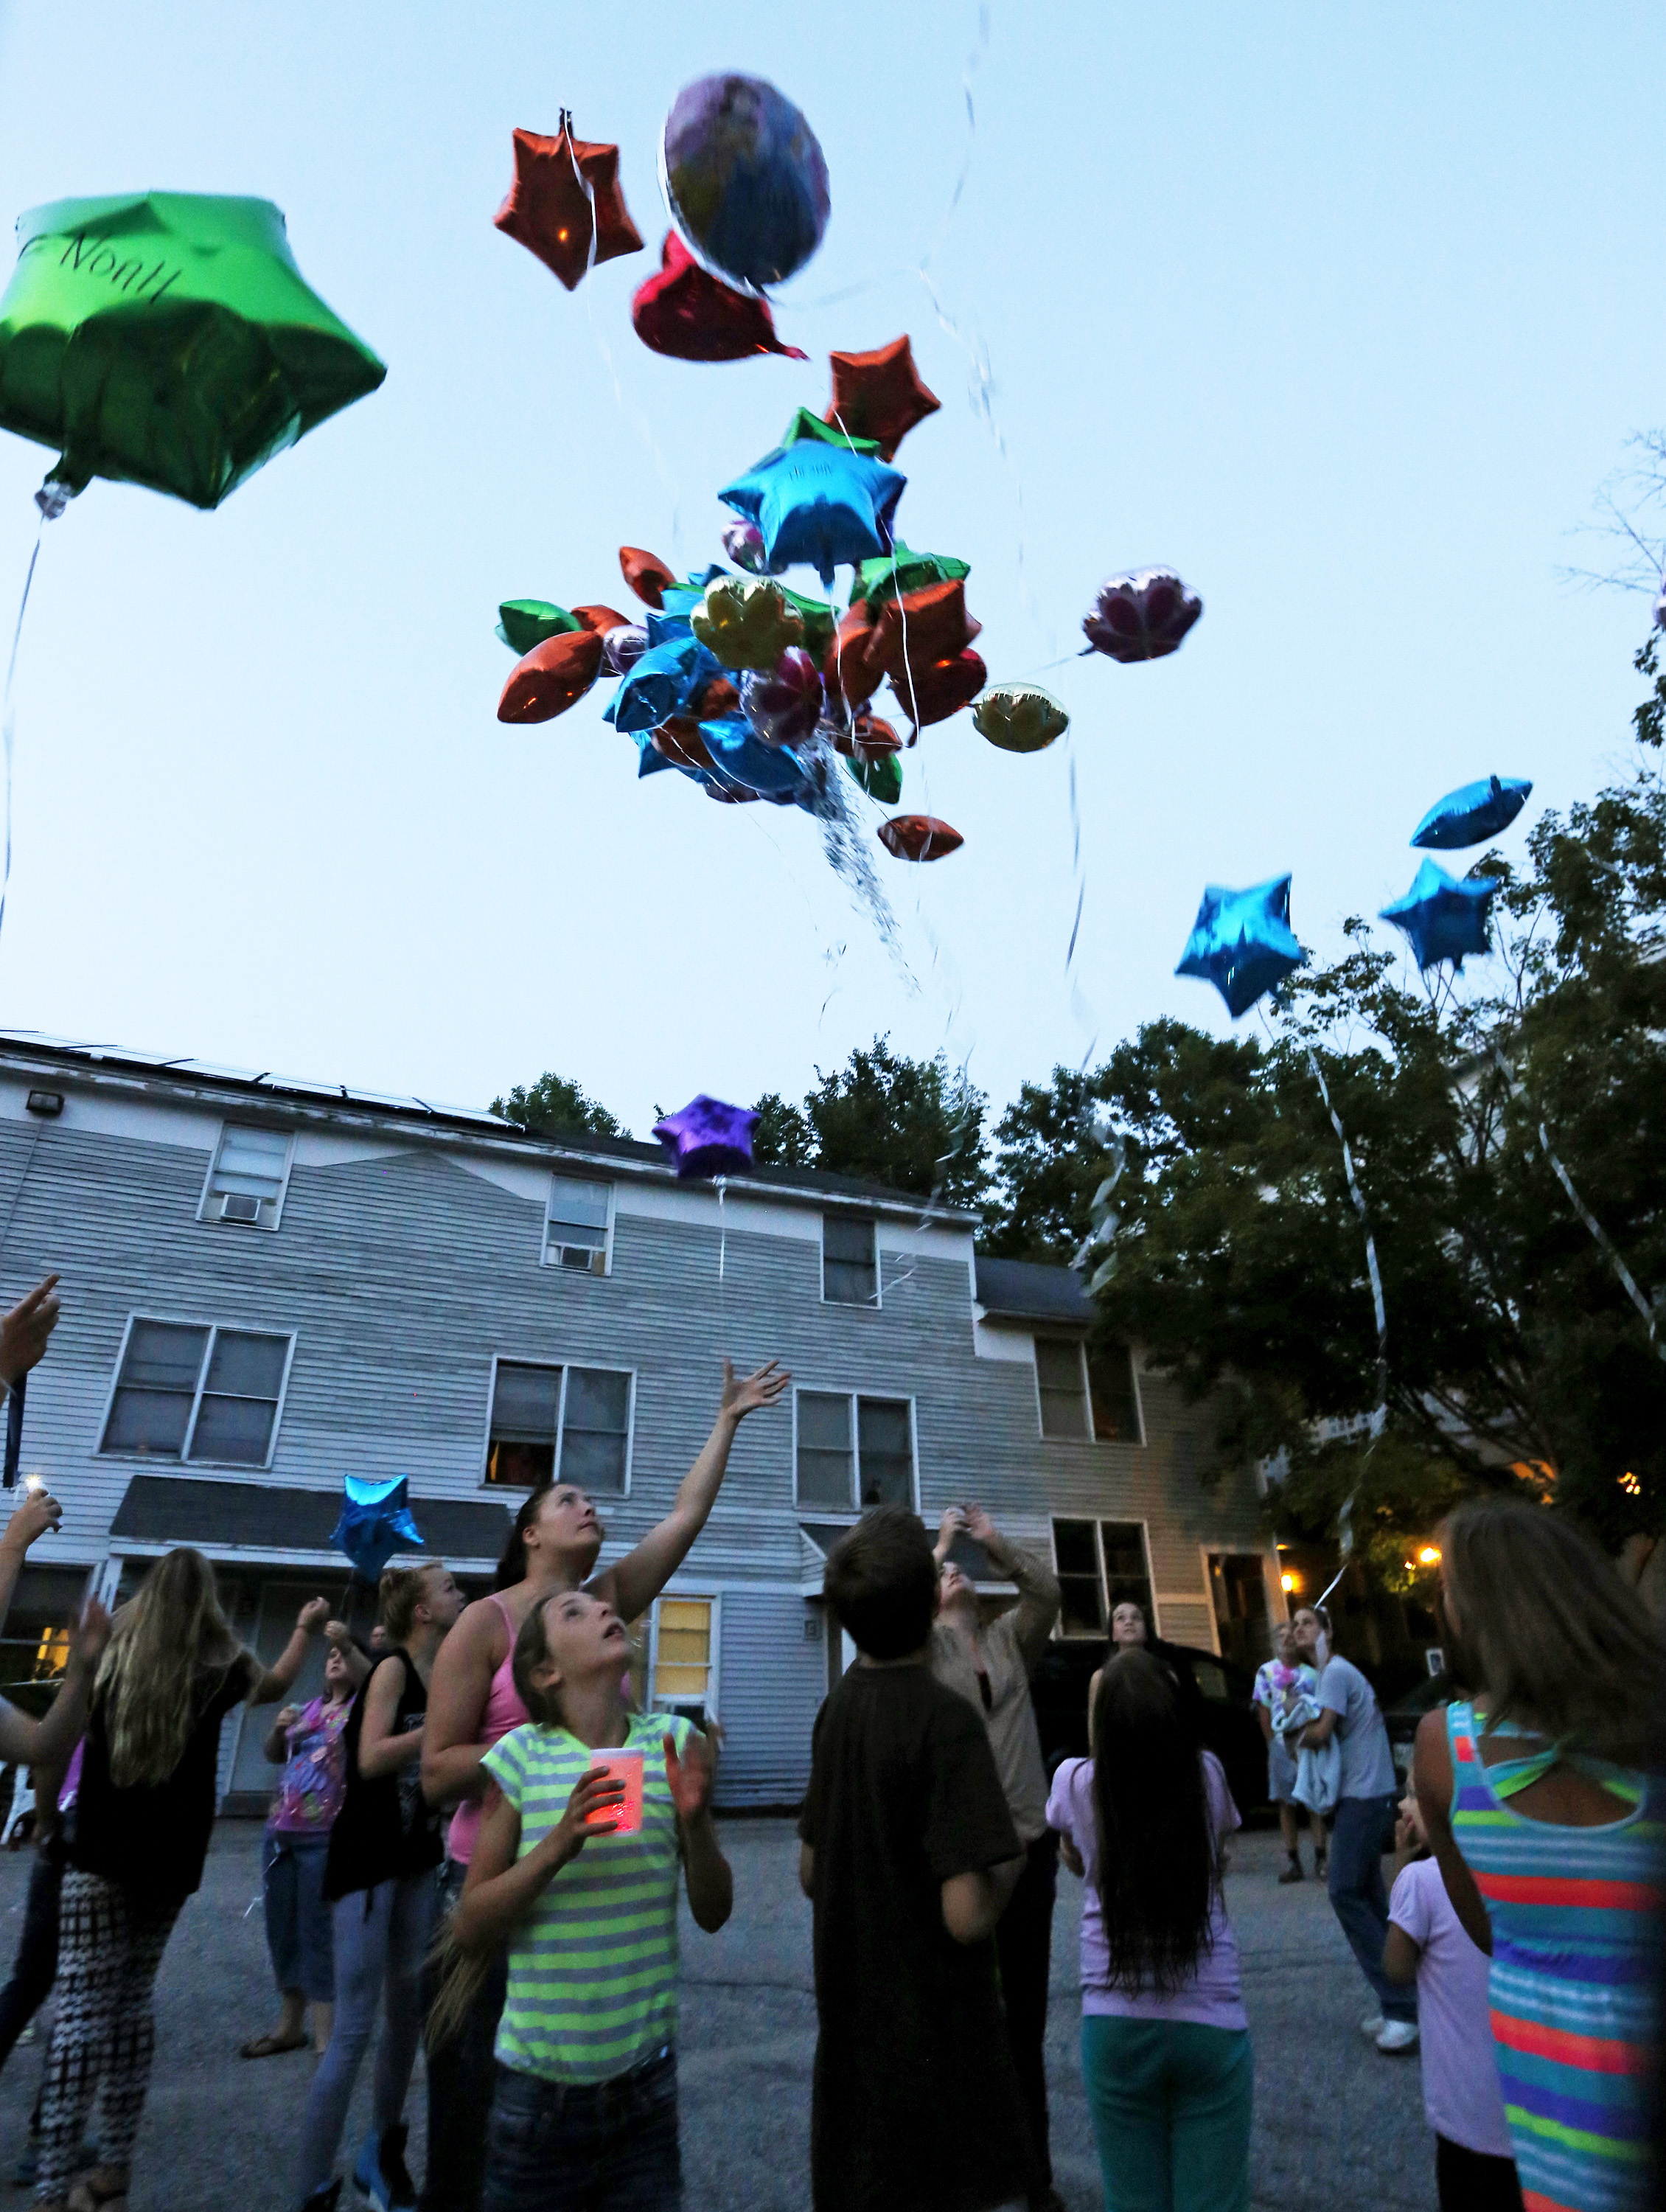 Residents of the RiverView apartments let balloons go, with messages written on them, during a vigil held for the Smith family Tuesday night.